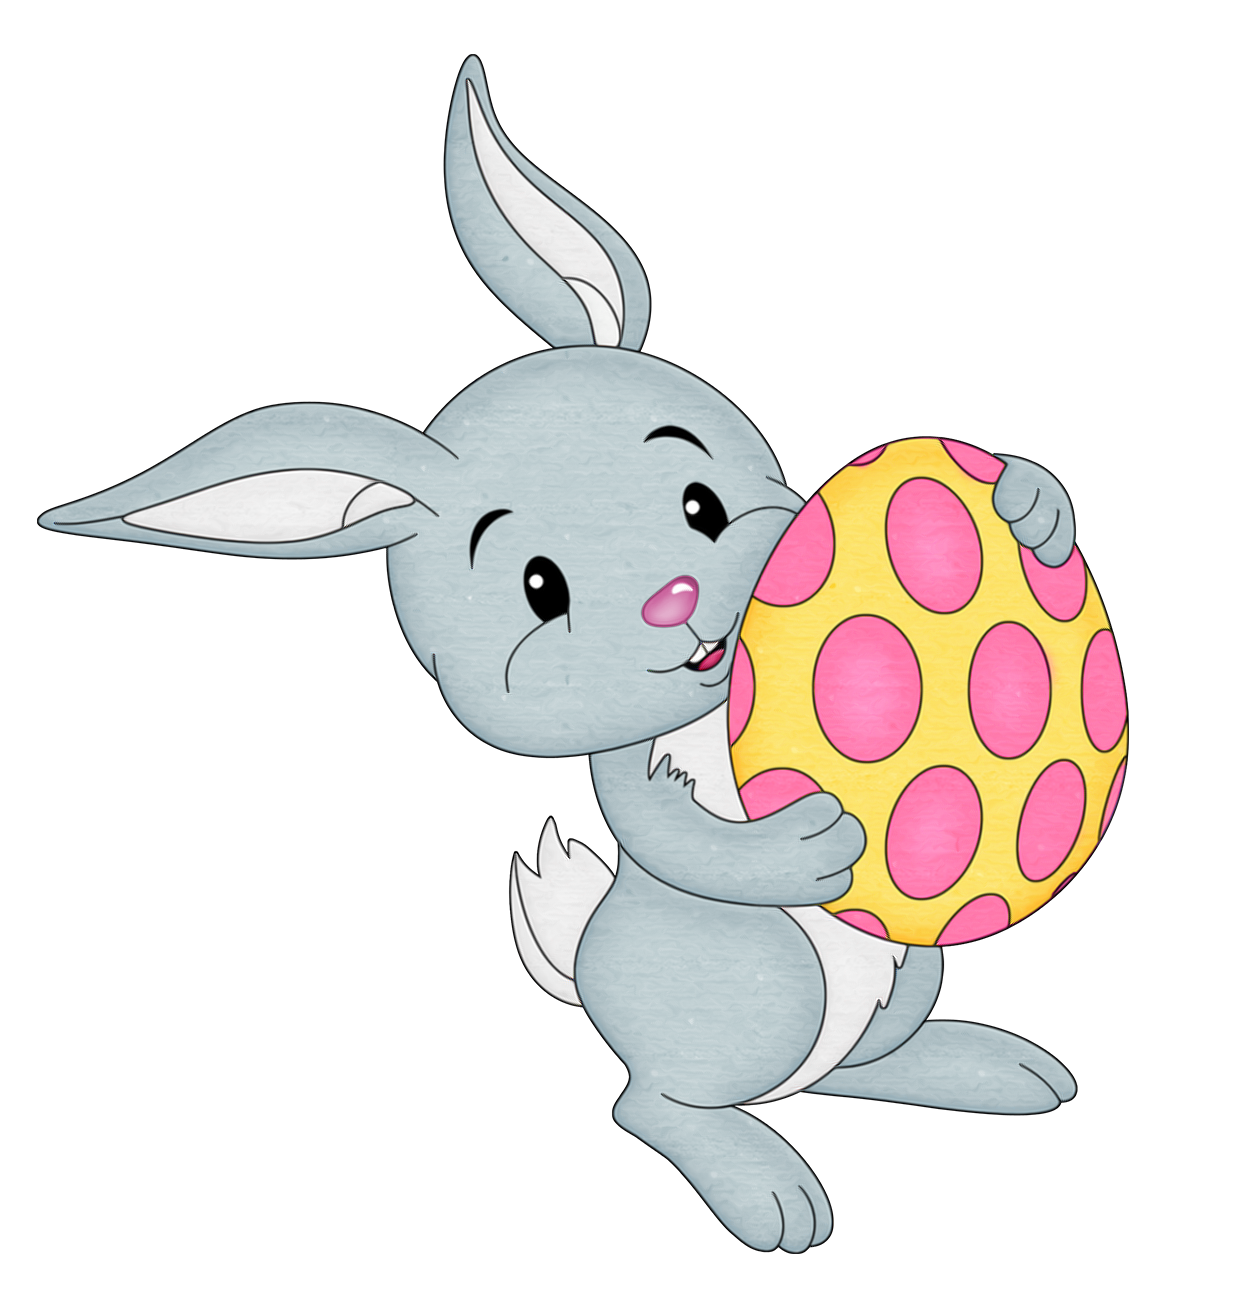 Easter Bunny with Yellow Egg Transparent PNG Clipart.